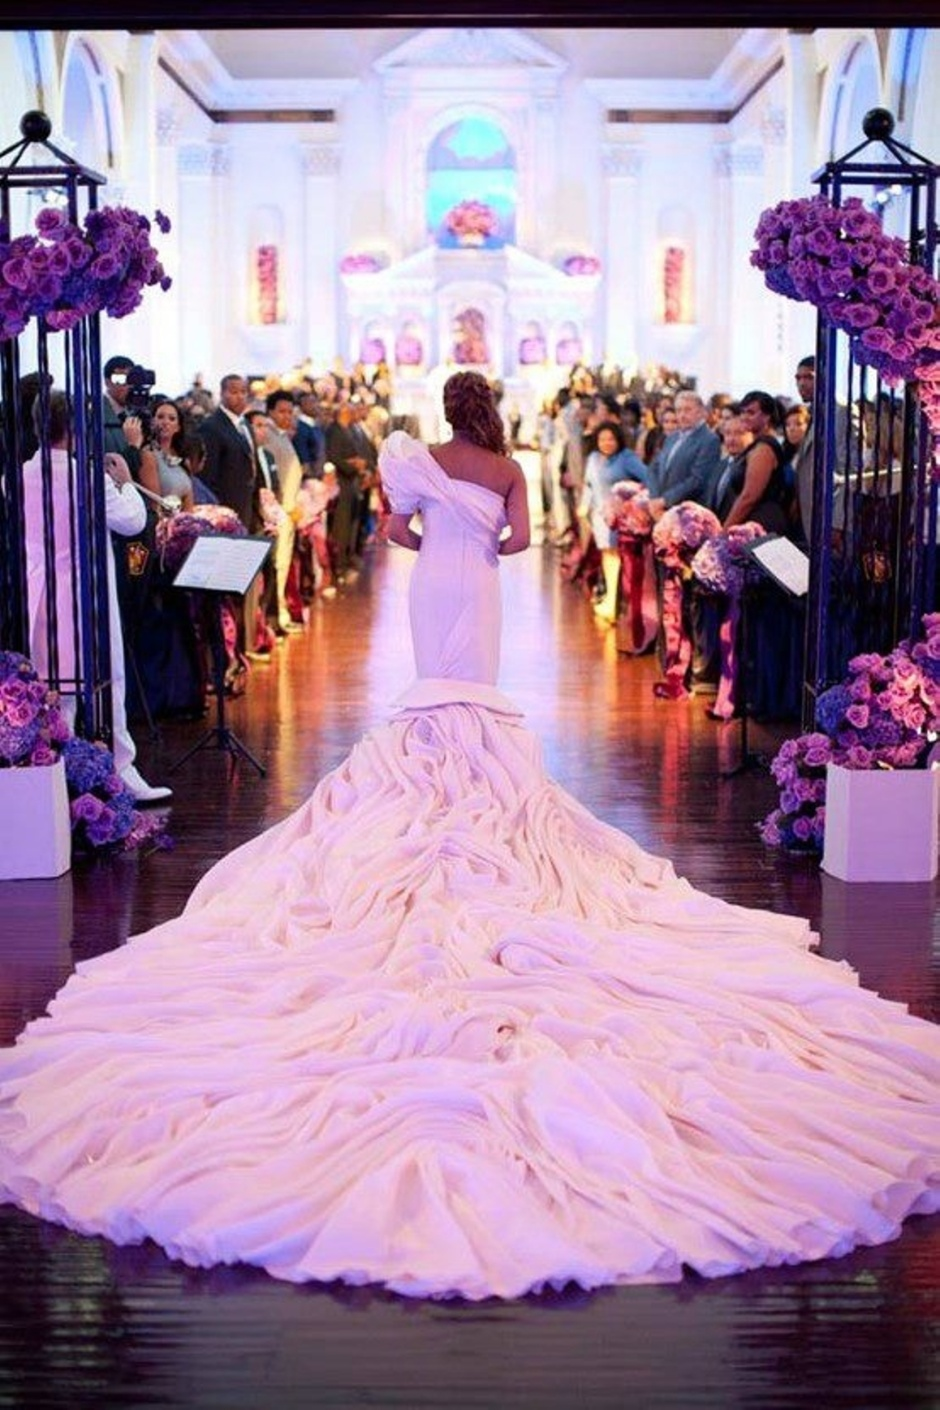 how to donate a wedding gown – shemakescents